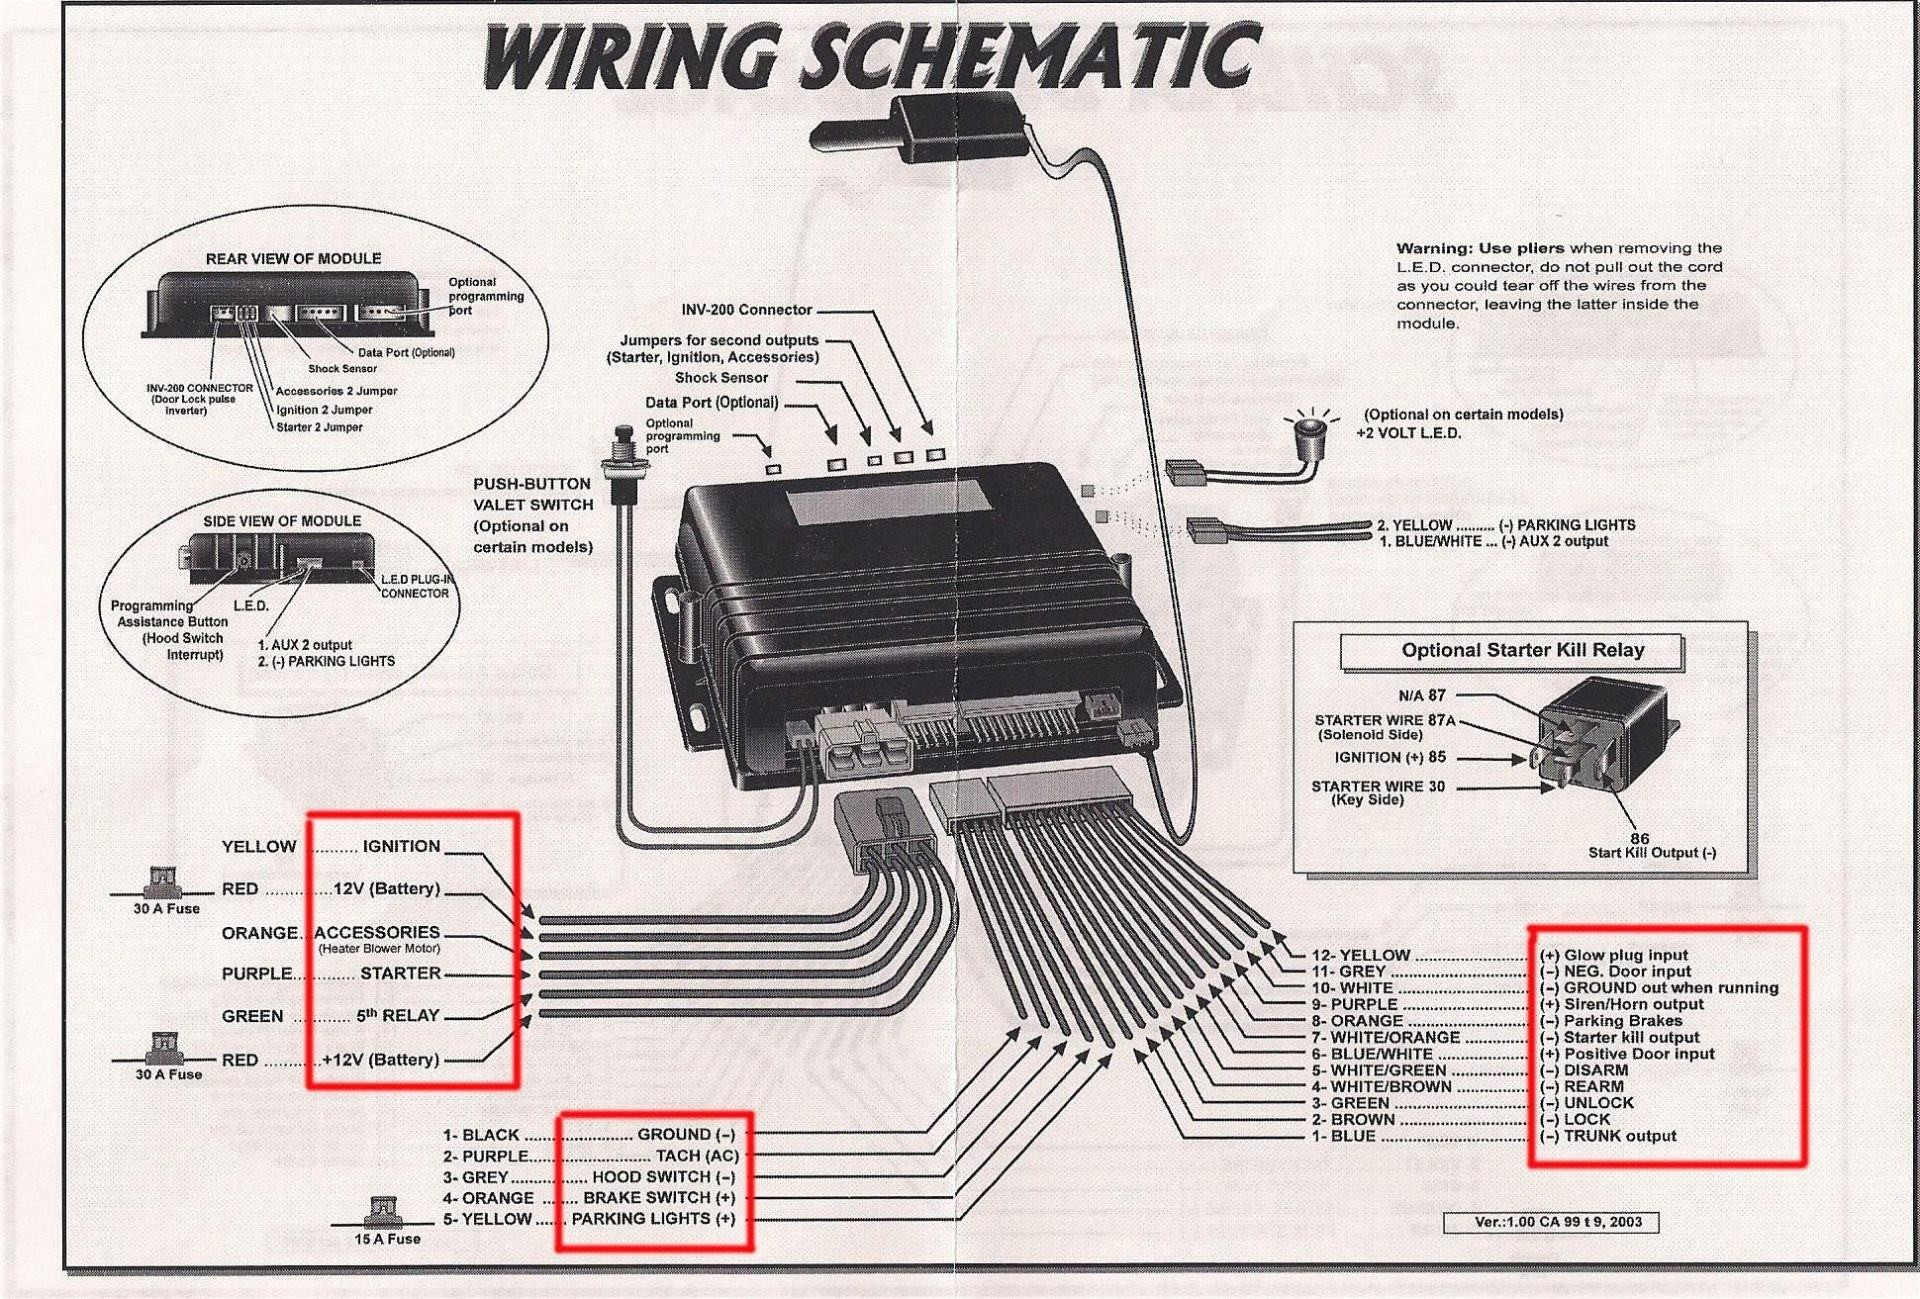 Wiring Diagram For Car Alarm Systems : Viper alarm system wiring diagram million